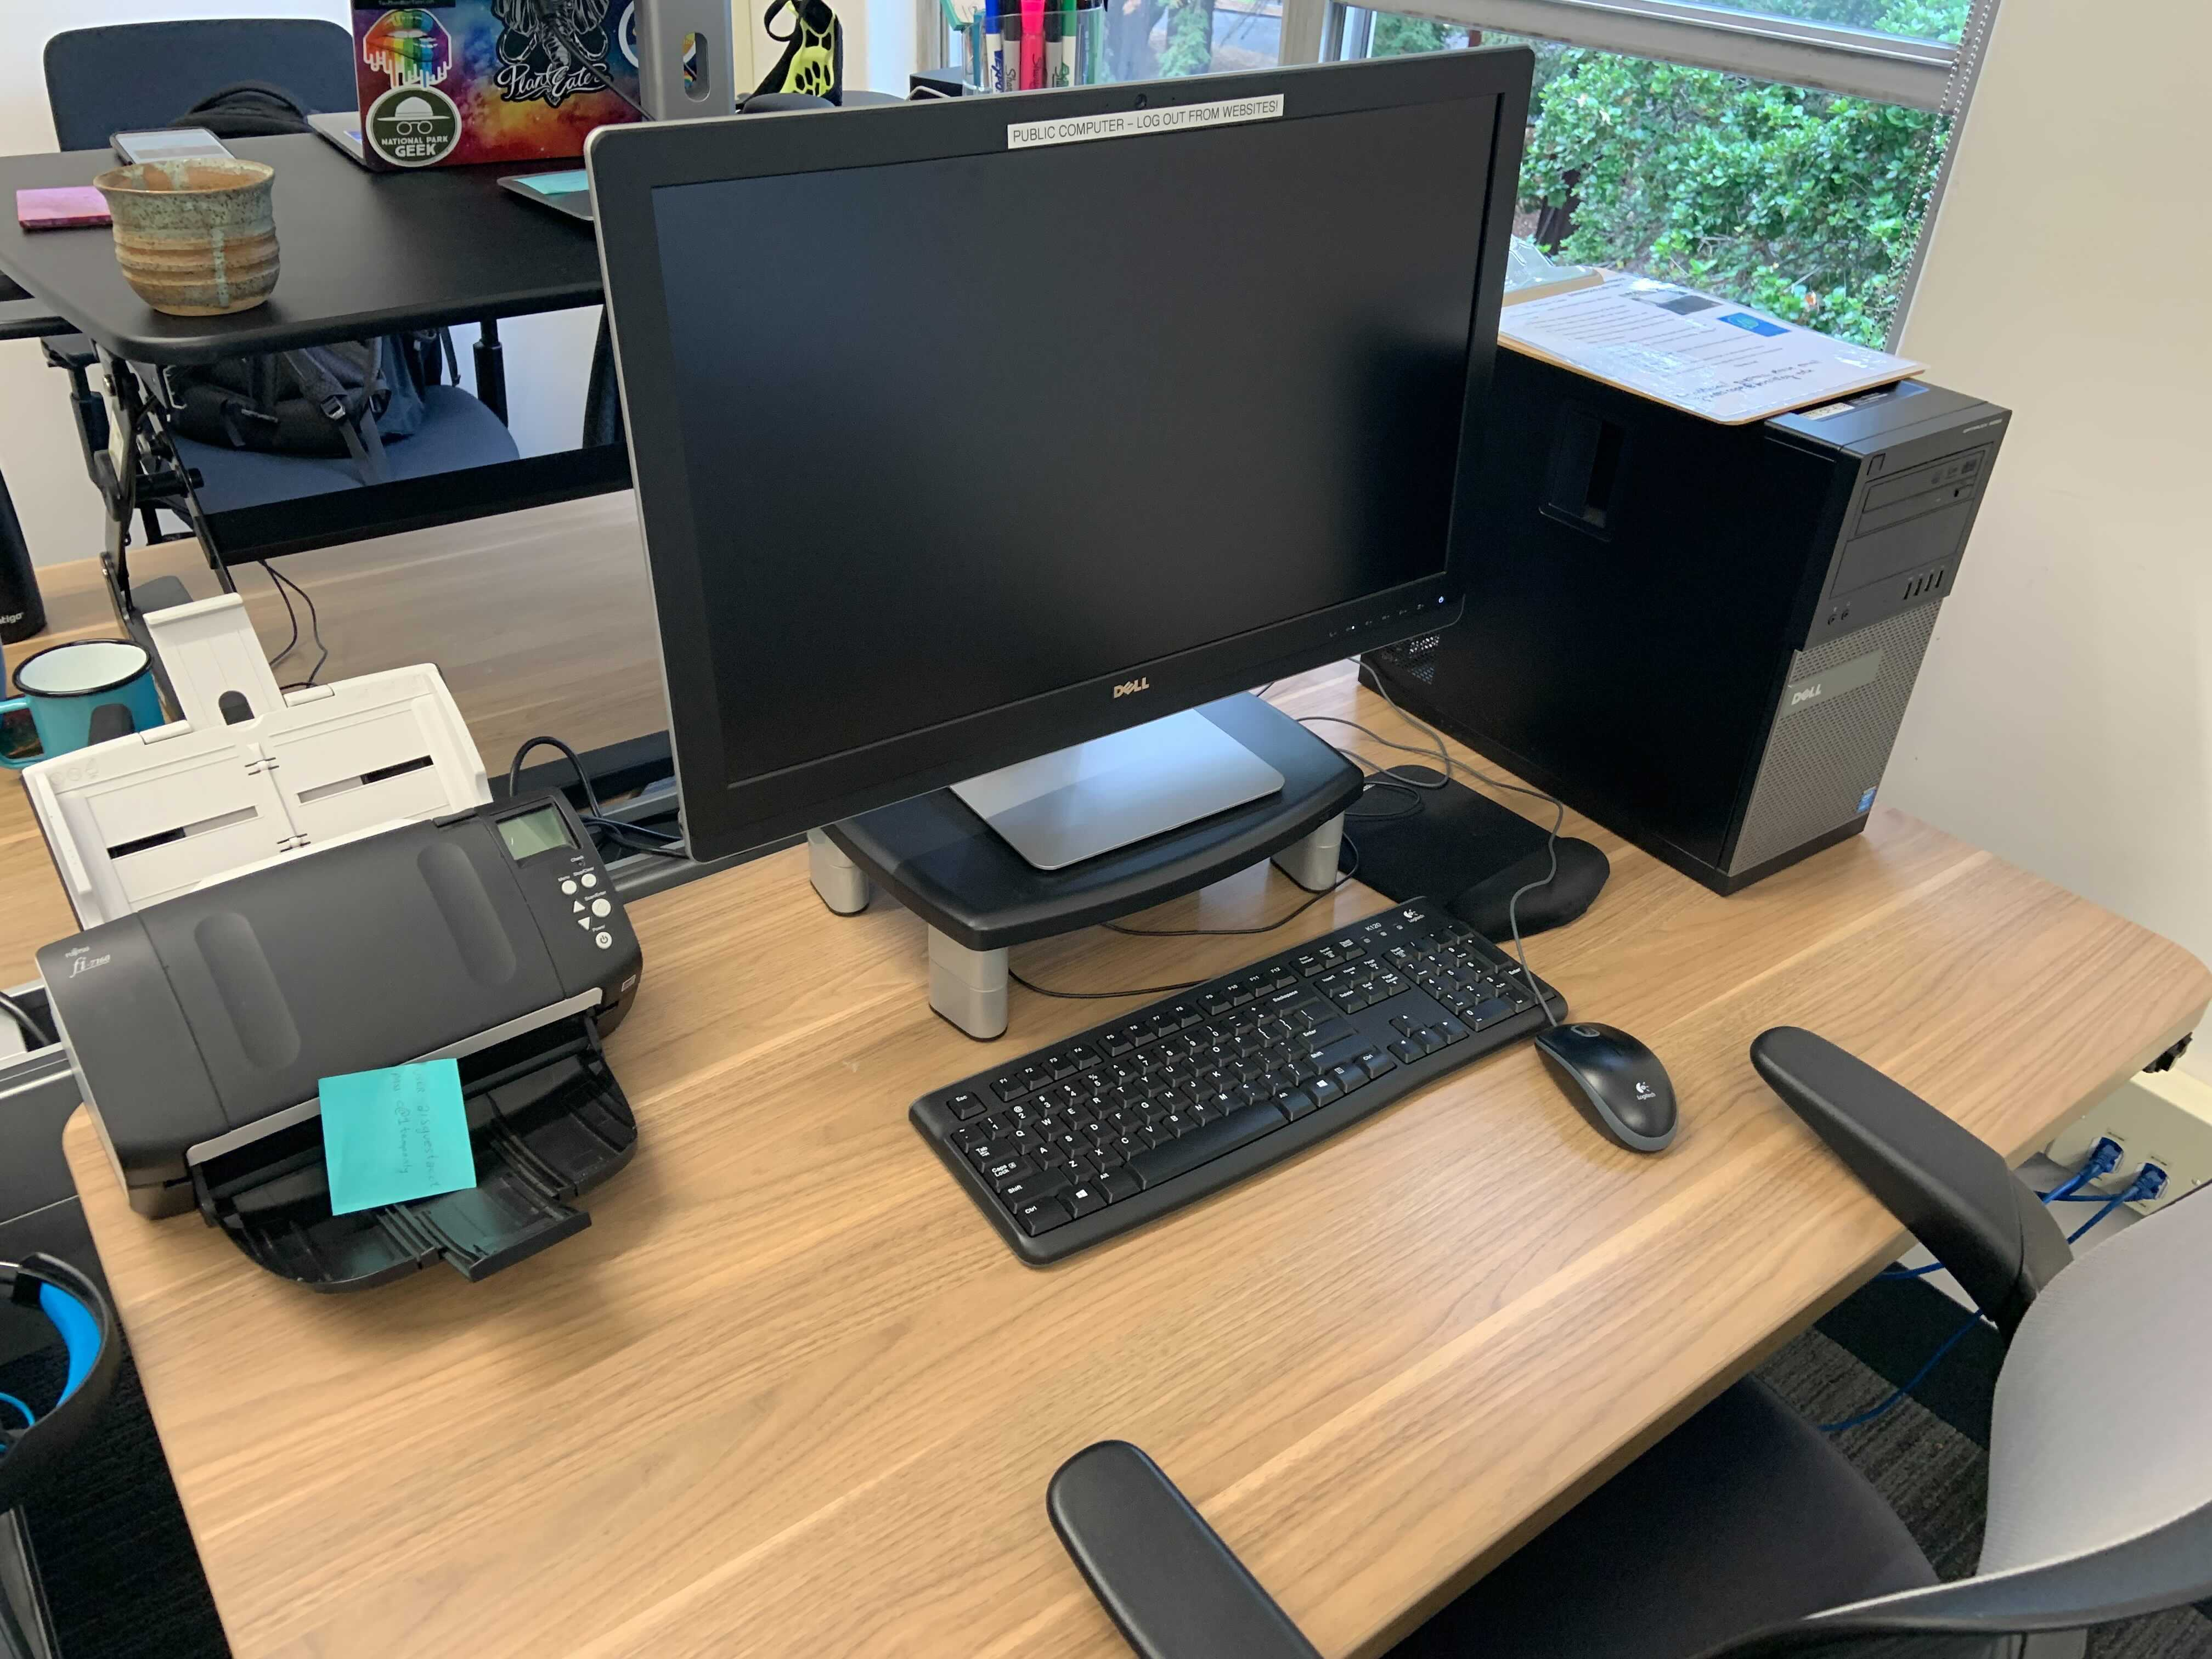 A desktop computer, keyboard, mouse, and scanning device on a desk in the Academic Innovation Studio.